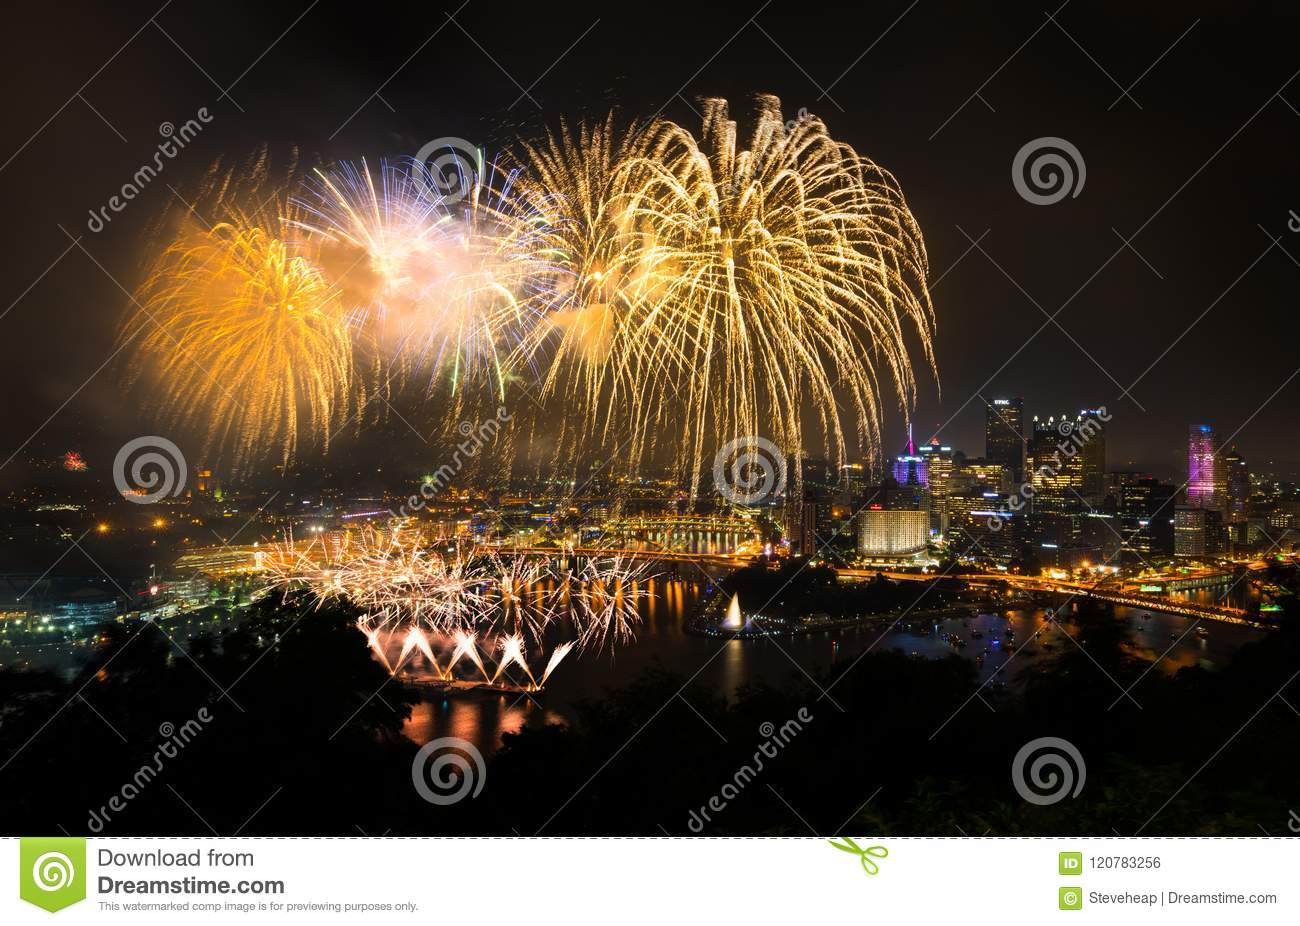 Fireworks over Pittsburgh for Independence Day